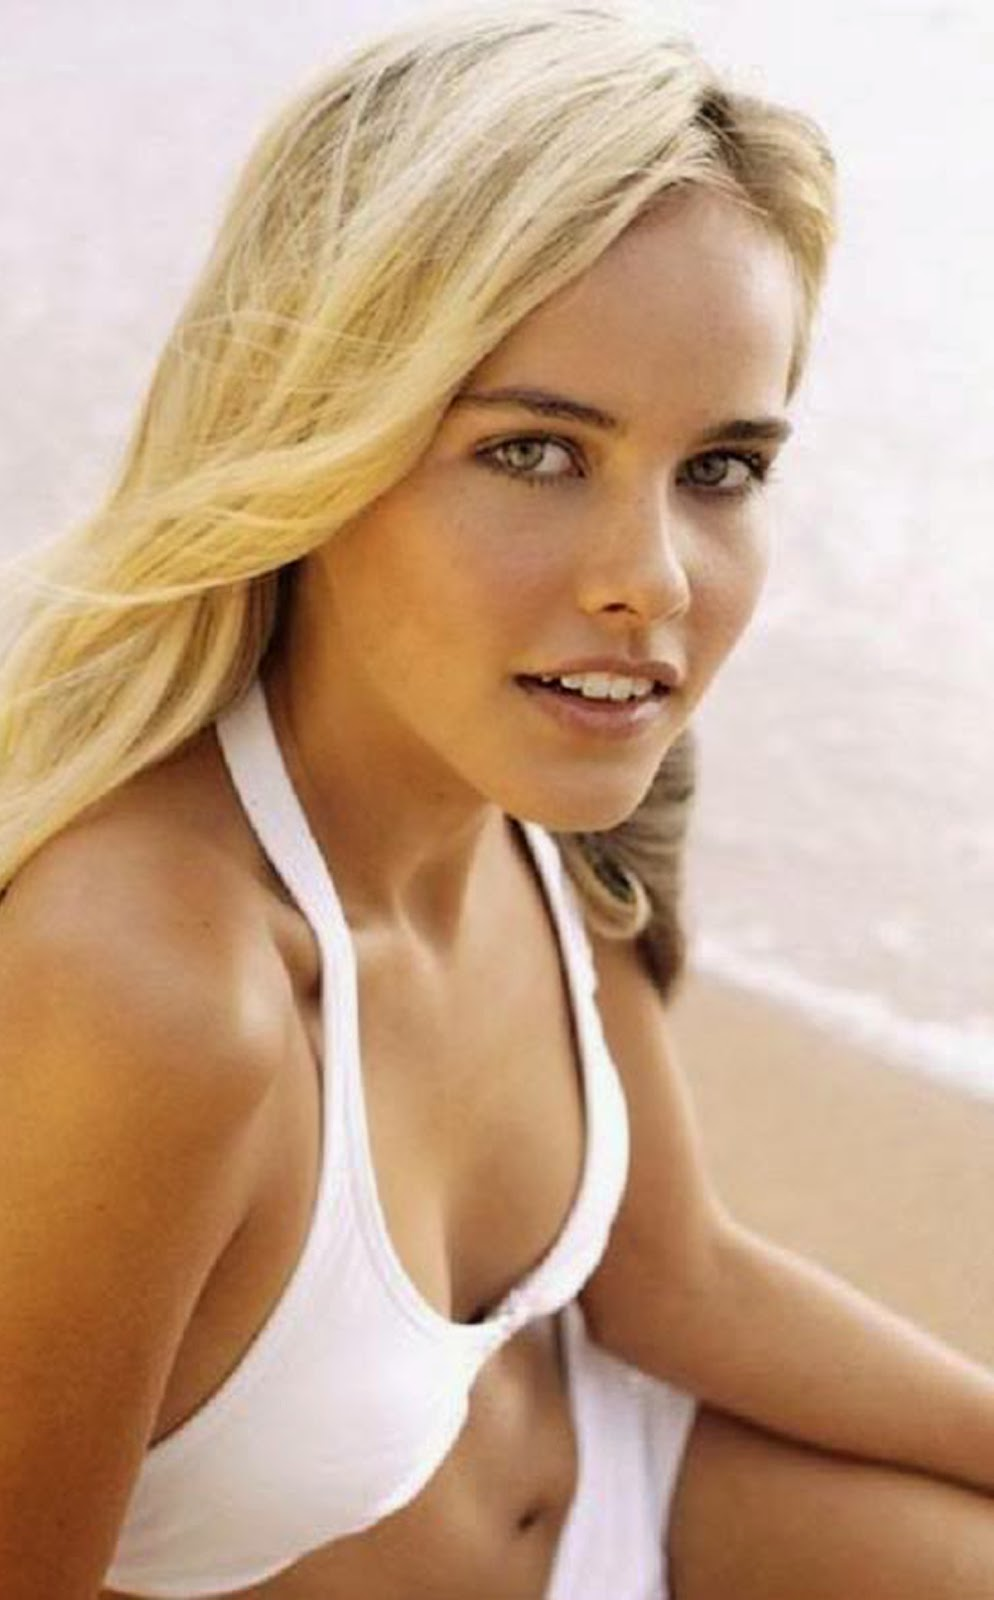 ISABEL LUCAS ACTRESS MODEL CLOSE UP PHOTO